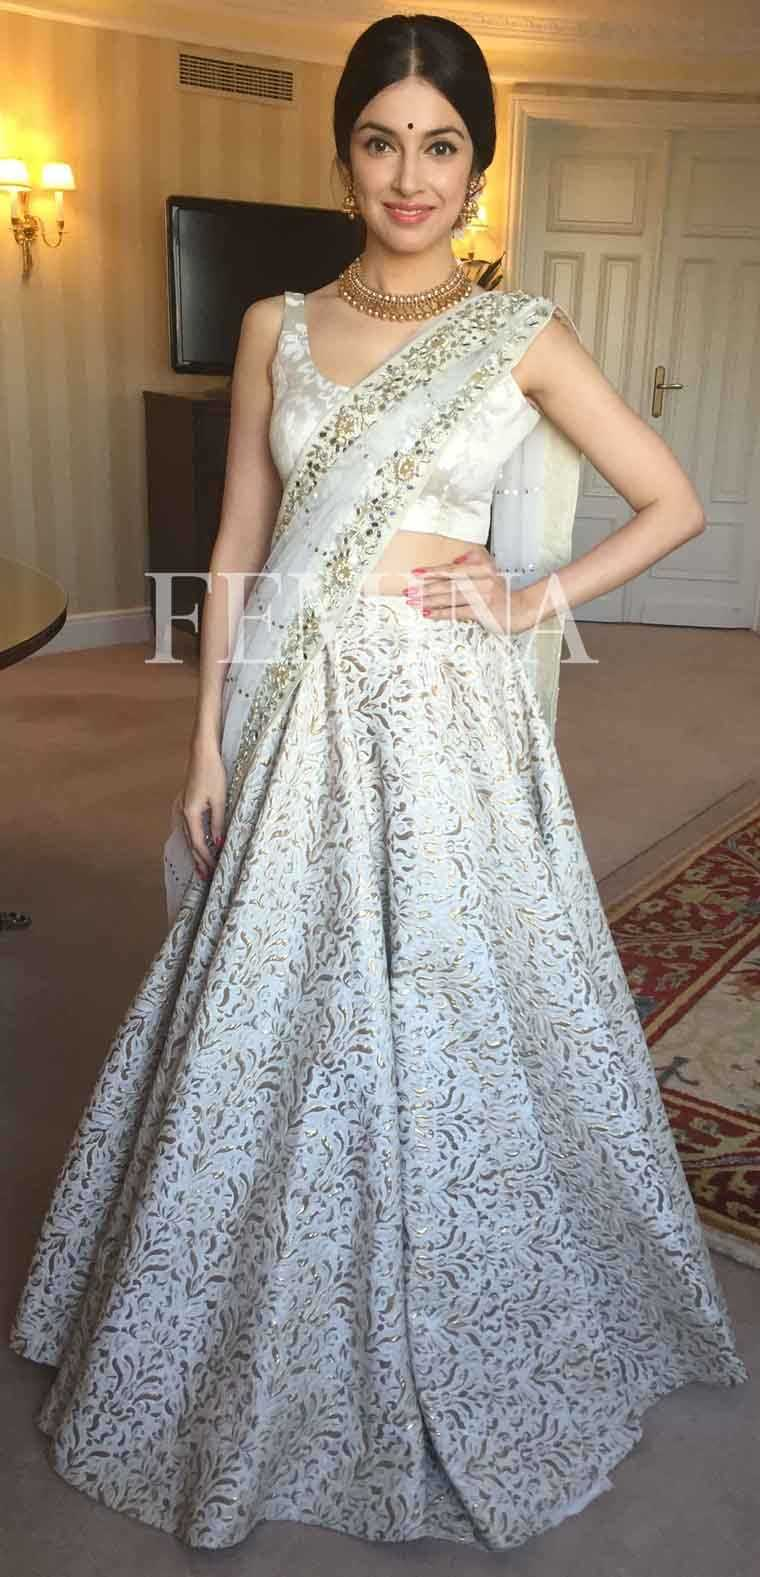 Divya Khosla Kumar: Ivory Divya went for an ornate Vikram Phadnis lehenga for her appearance at a recent award show. She finishes her look with a bindi, traditional gold jewellery and flowers in her hair.